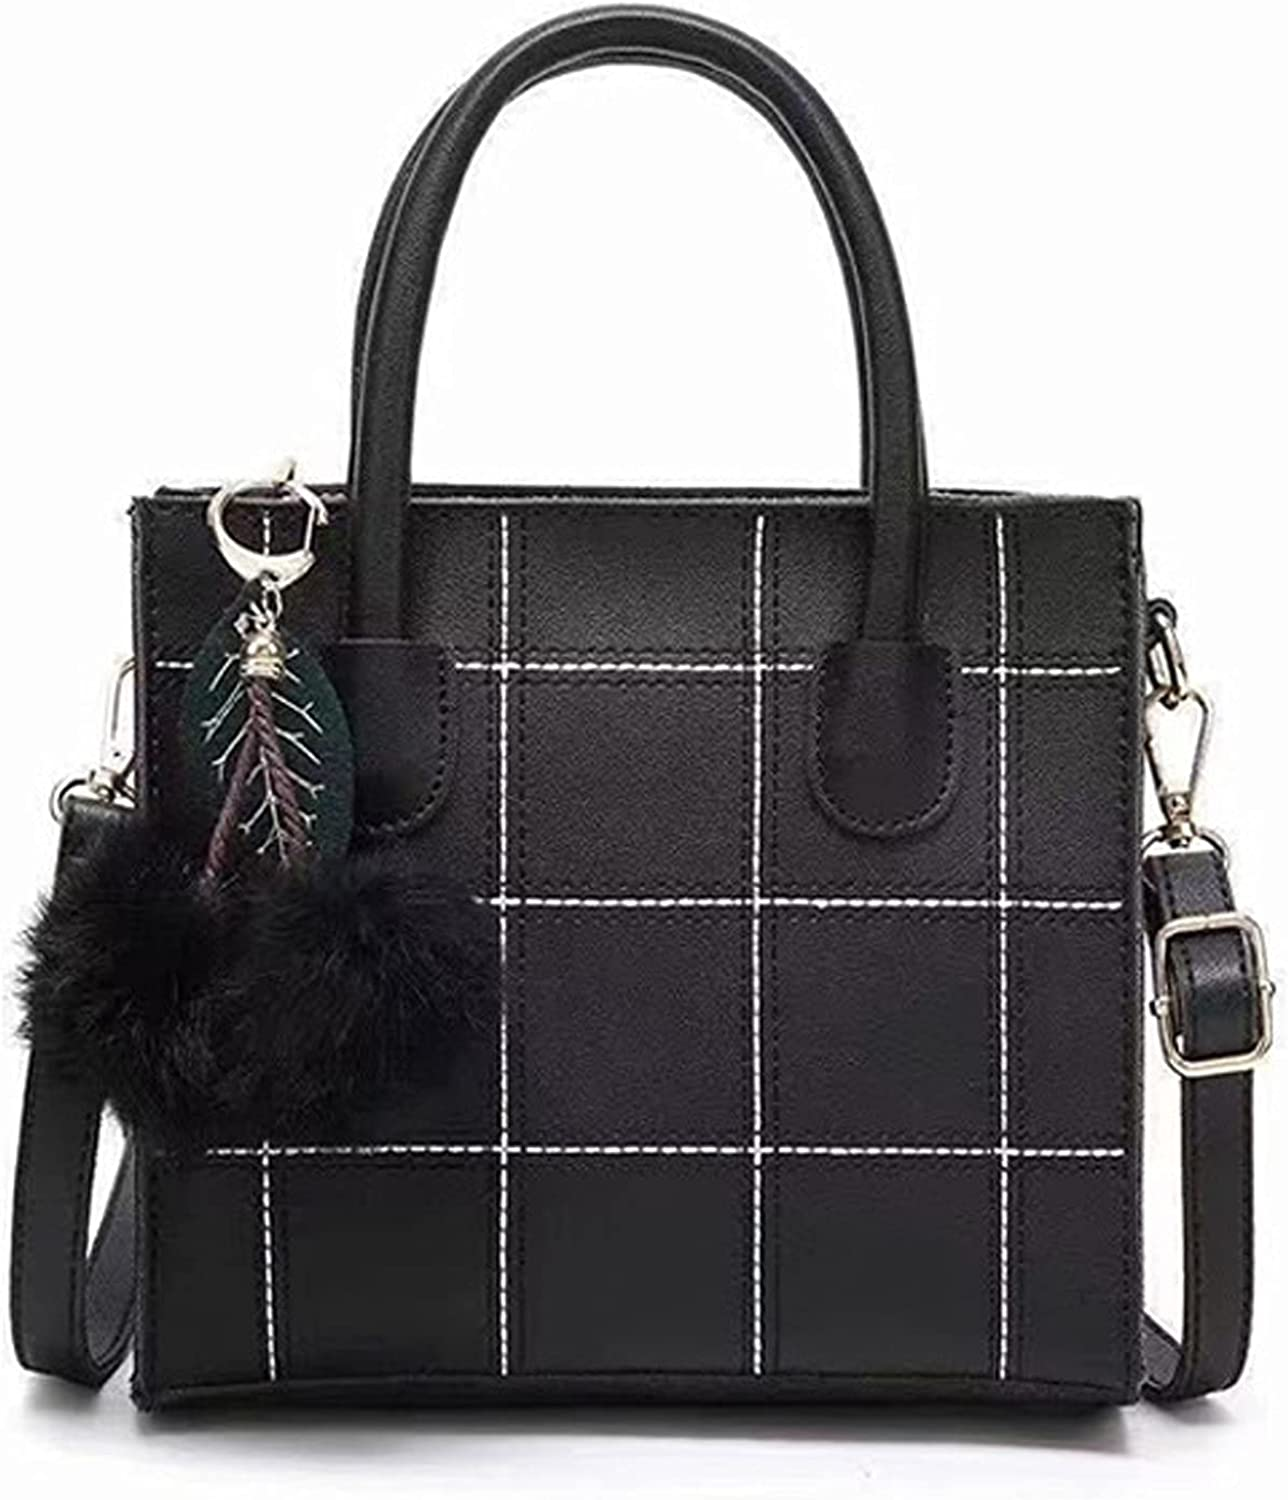 JWPavilion Purses All stores are sold and 2021 model Handbags for Square Quilted Women Fashion